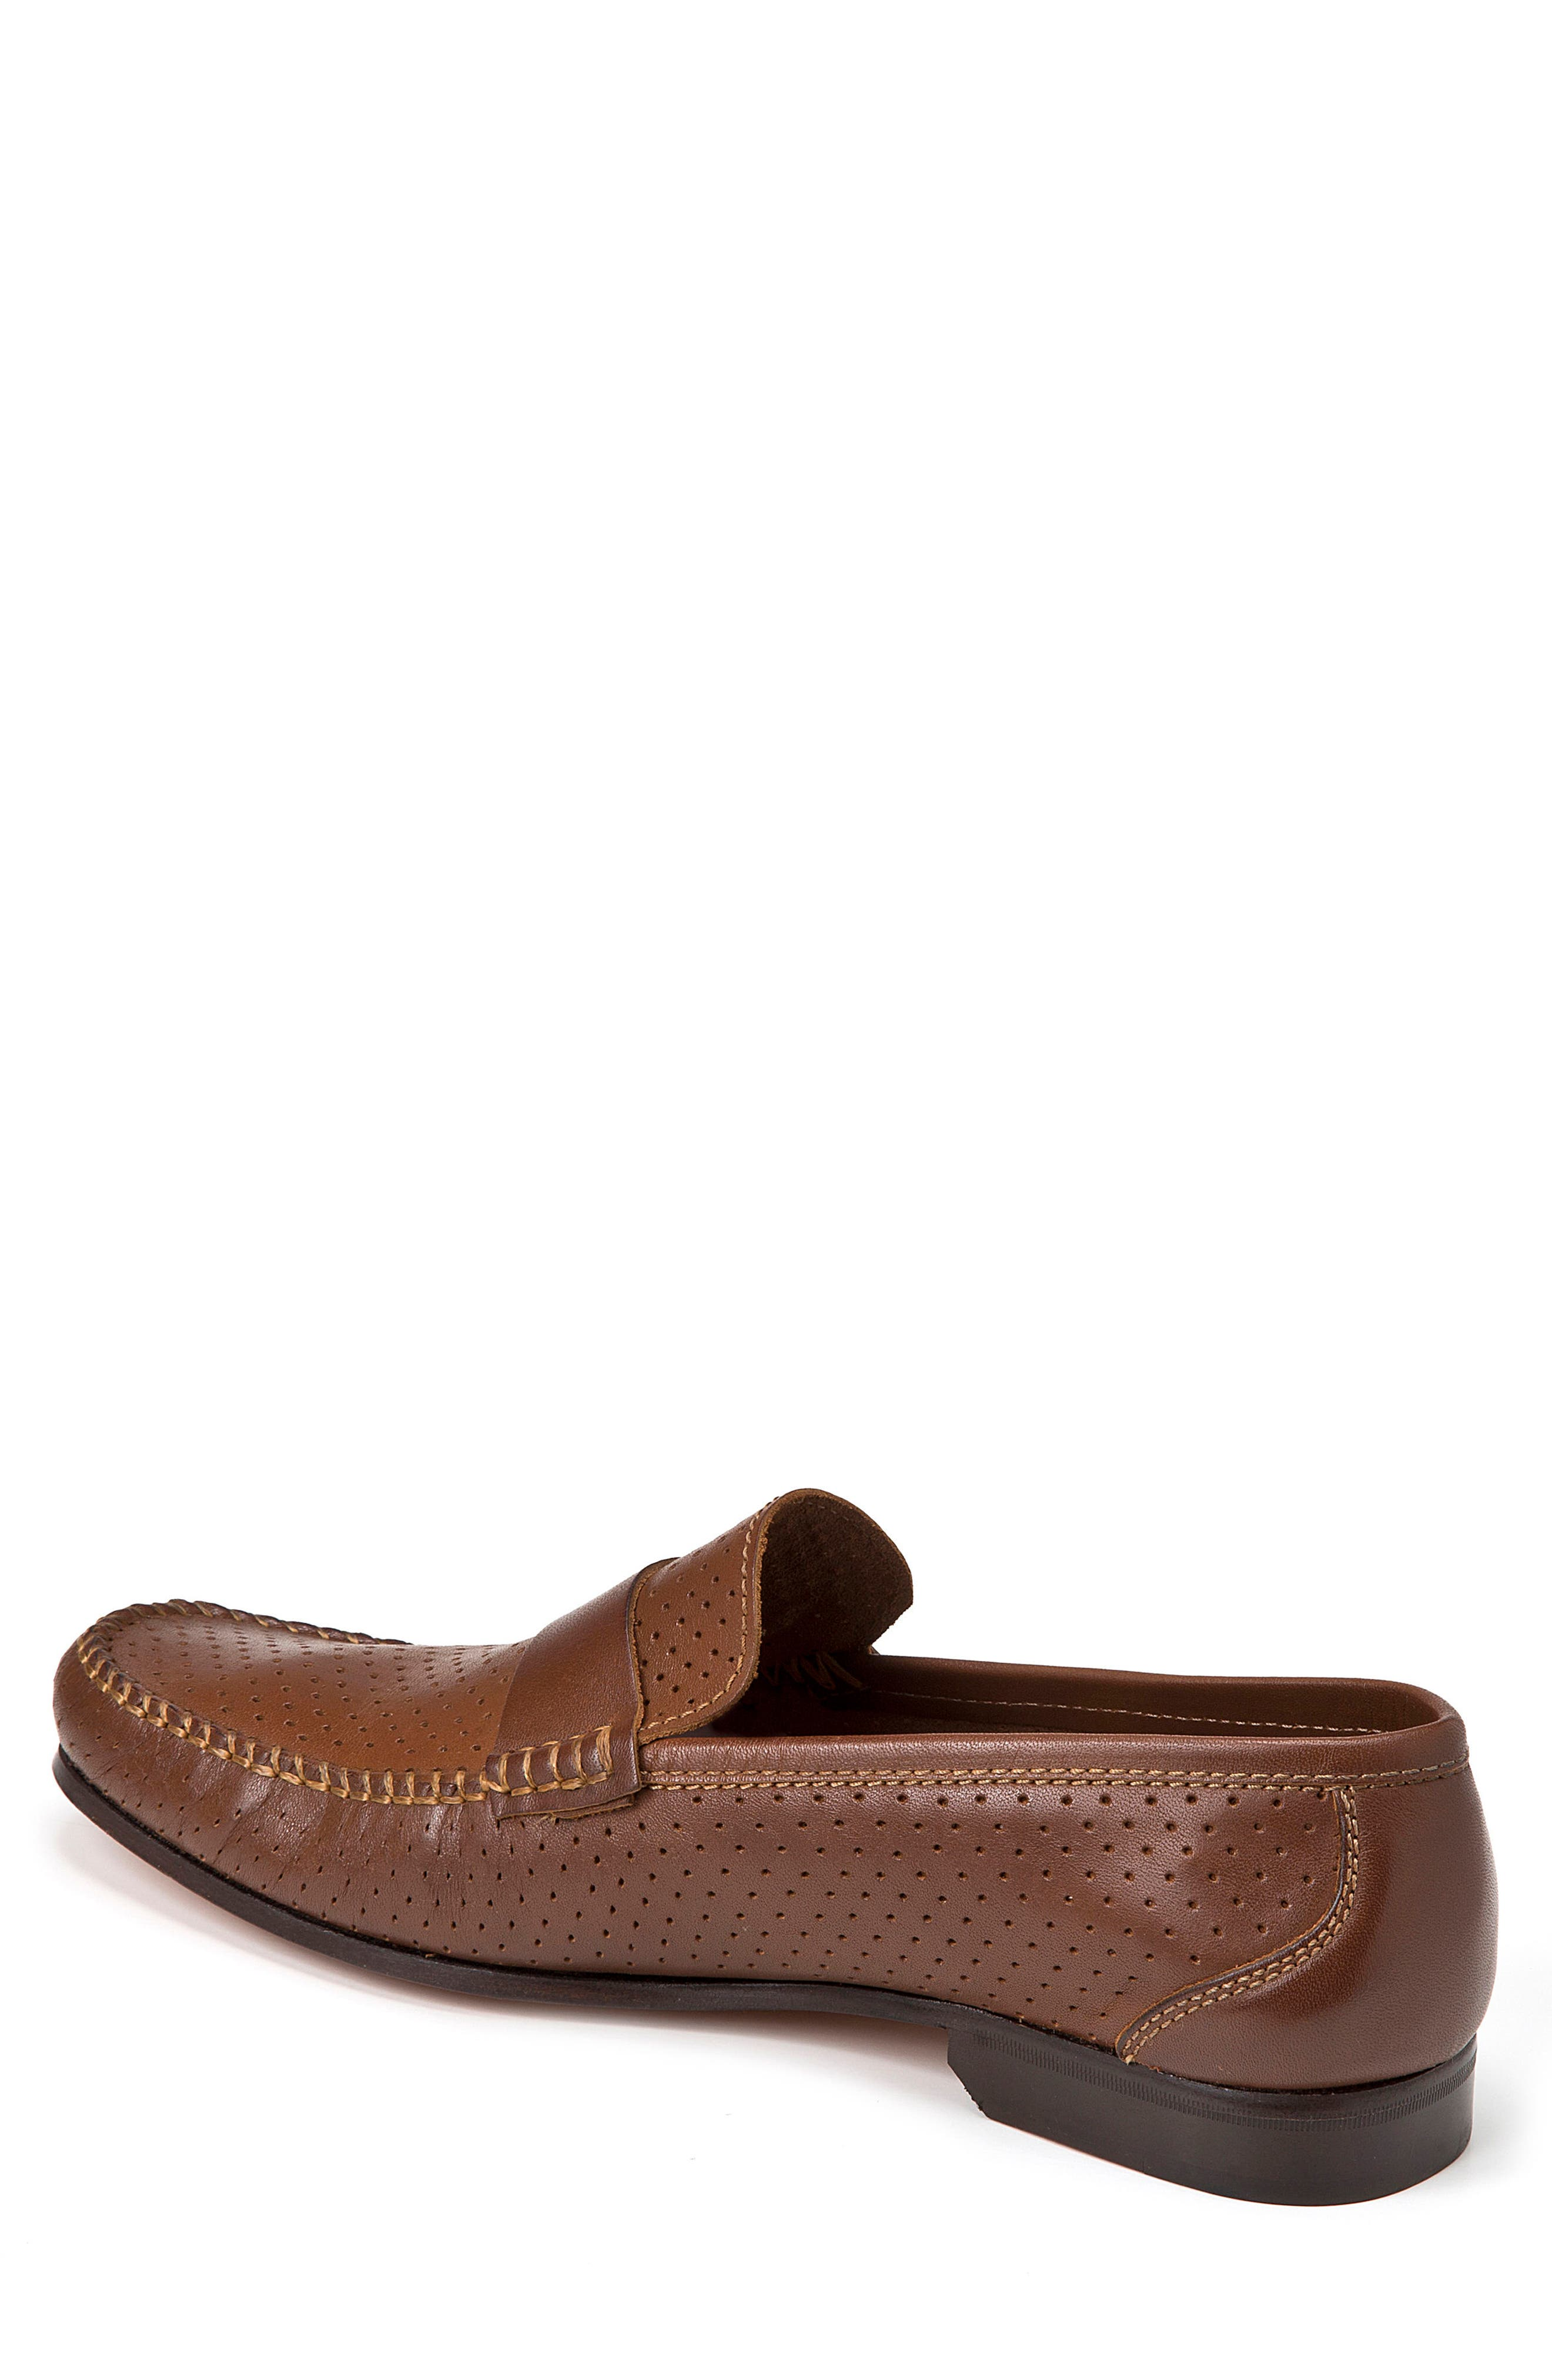 Alcazar Perforated Loafer,                             Alternate thumbnail 2, color,